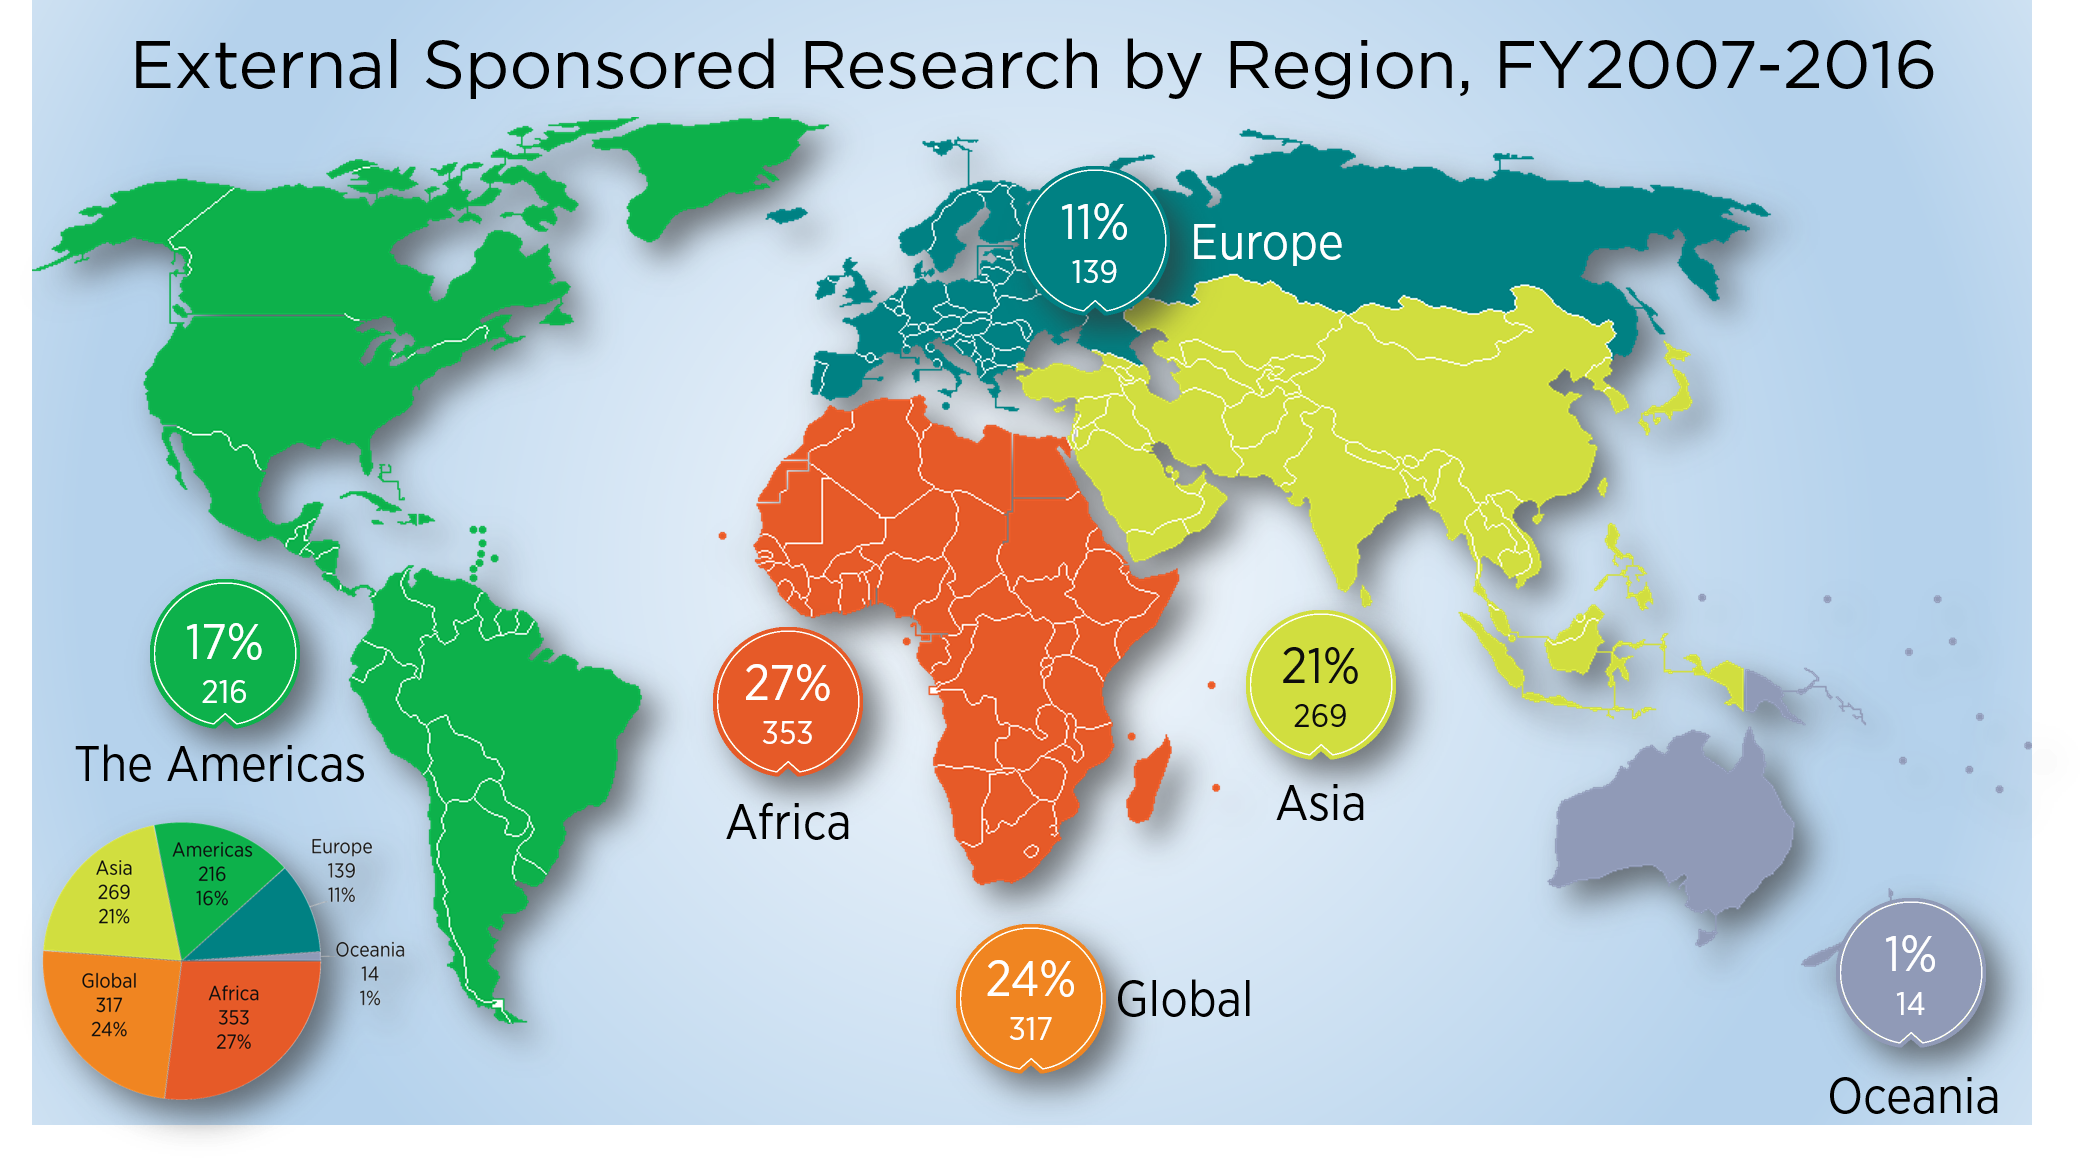 Map: MSU External Sponsored Research Projects by Region 2007-2016. Africa 353 projects. Asia 269 projects. Americas 216 projects. Europe 139 projects. Oceania 14 projects. Global/Multi-Regional 317 projects.